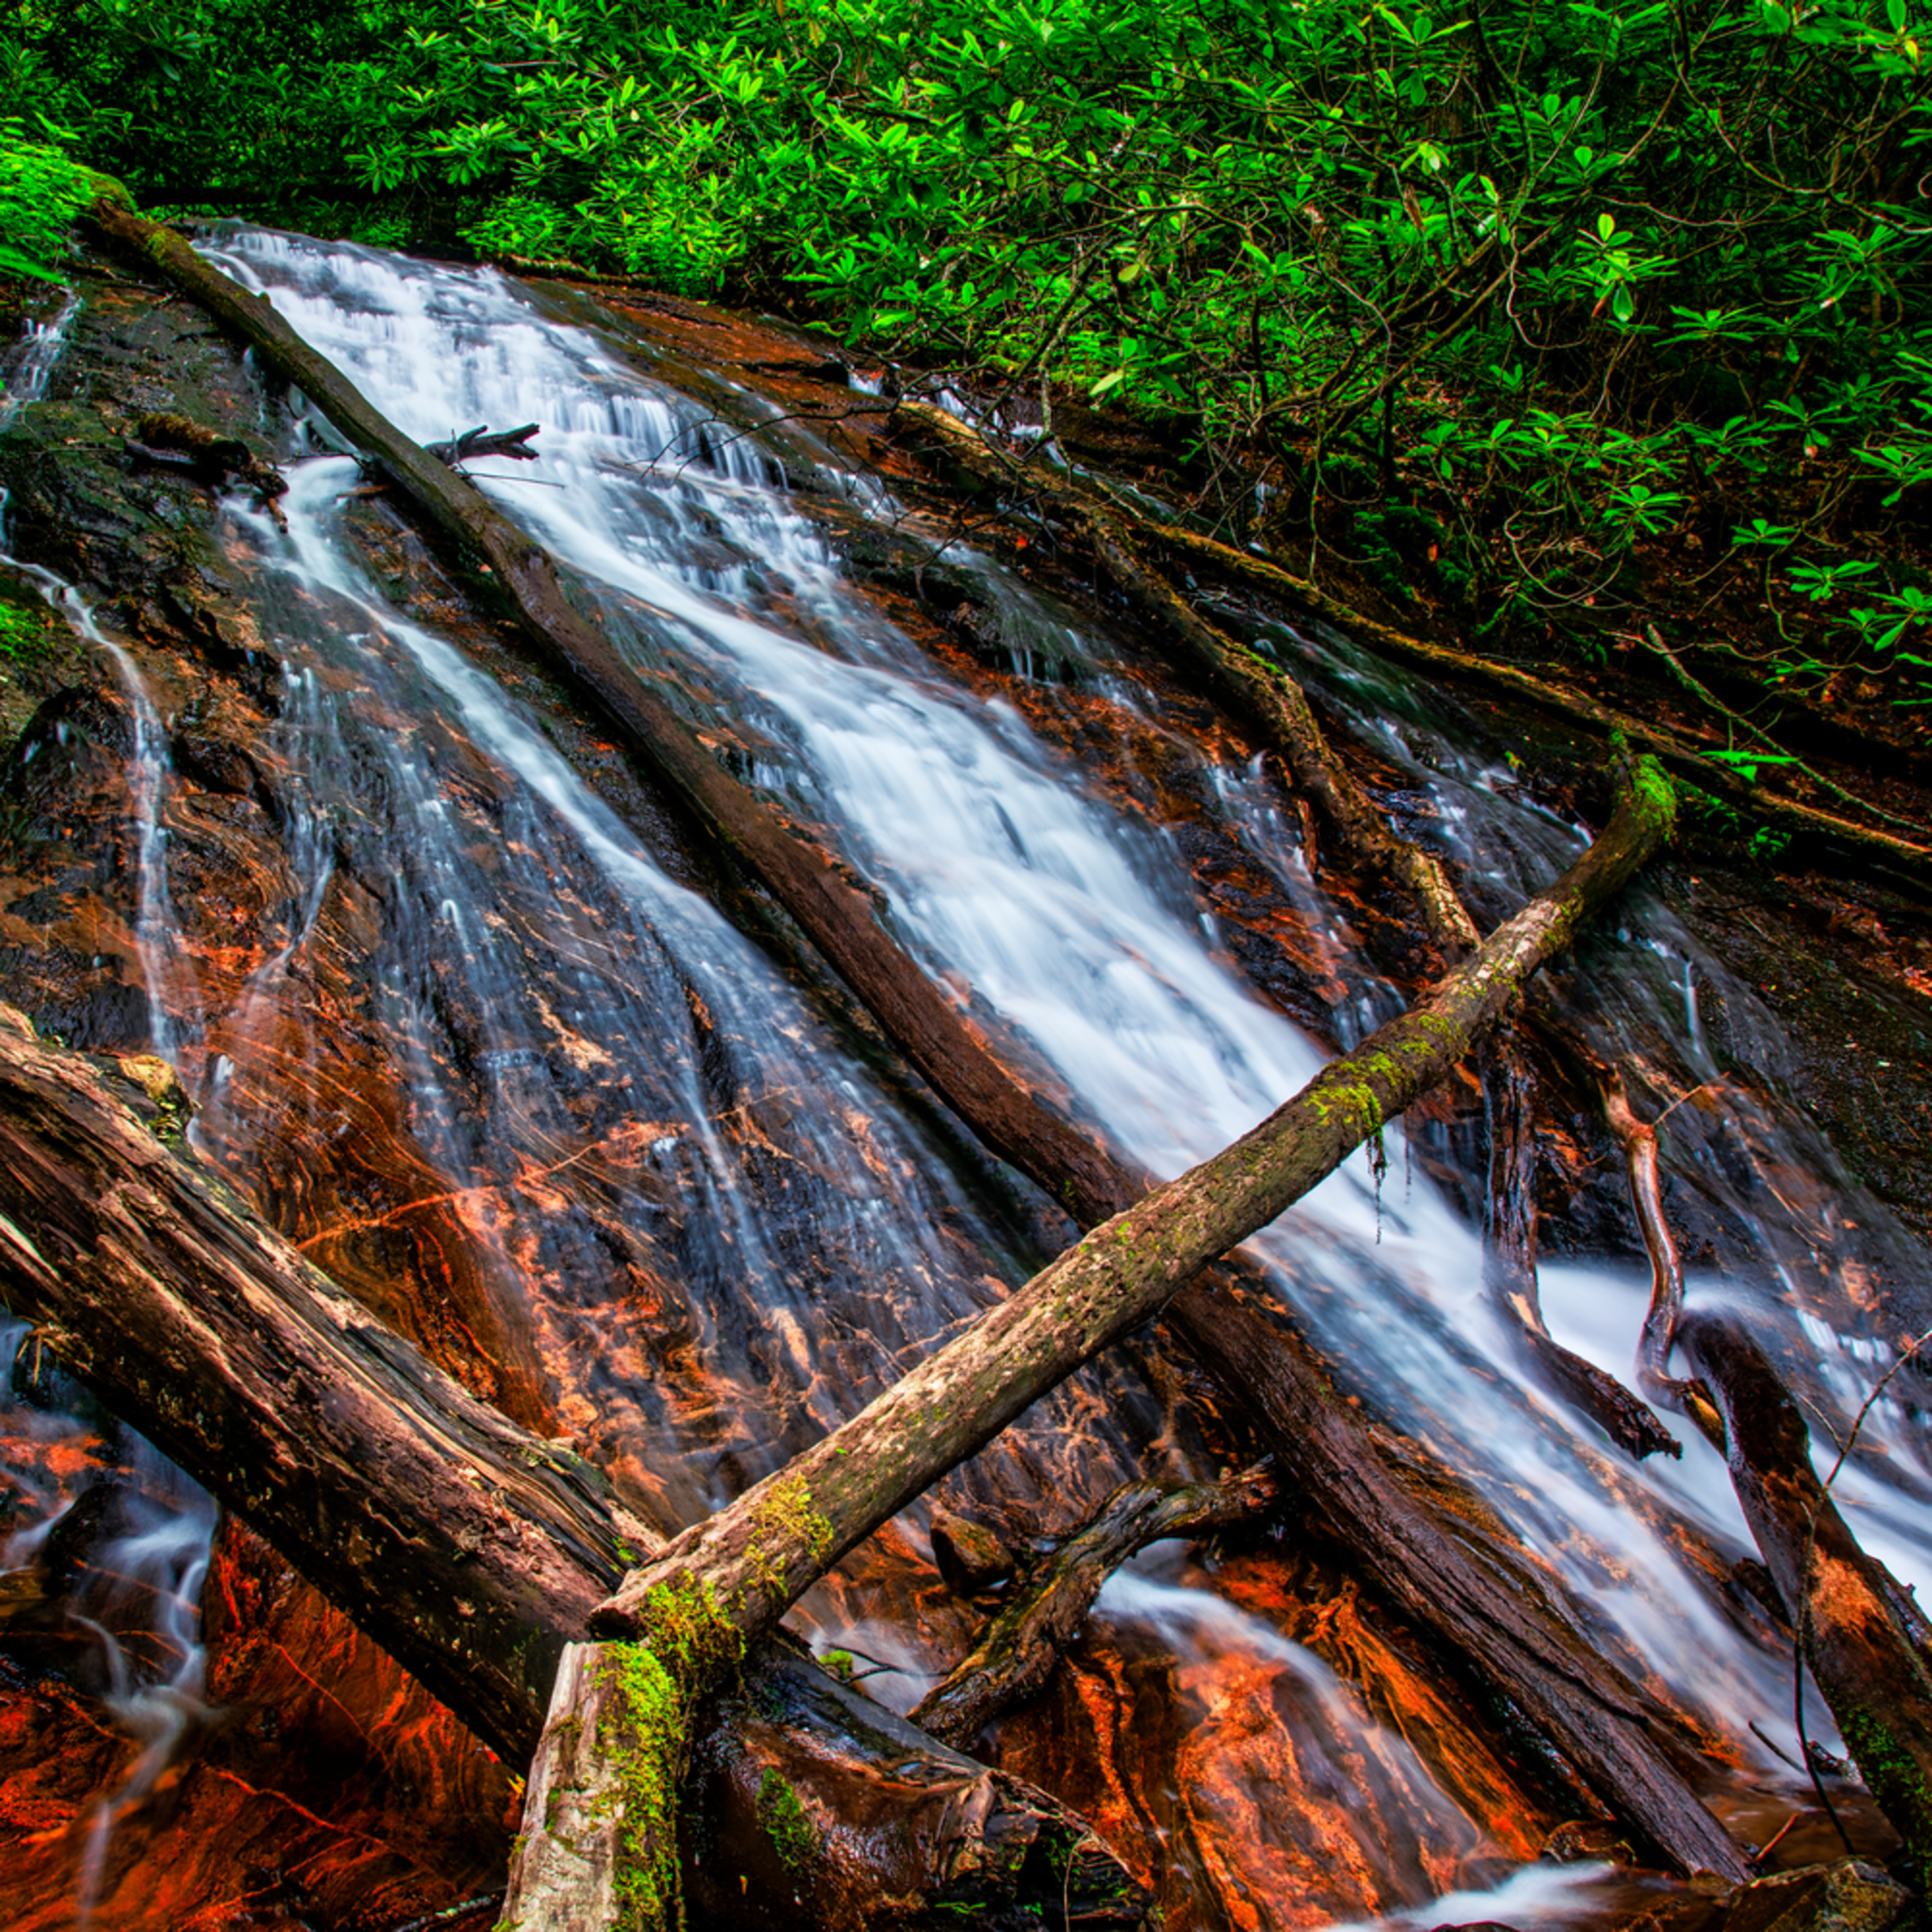 Andy crawford photography rufus morgan lower waterfall vext4c